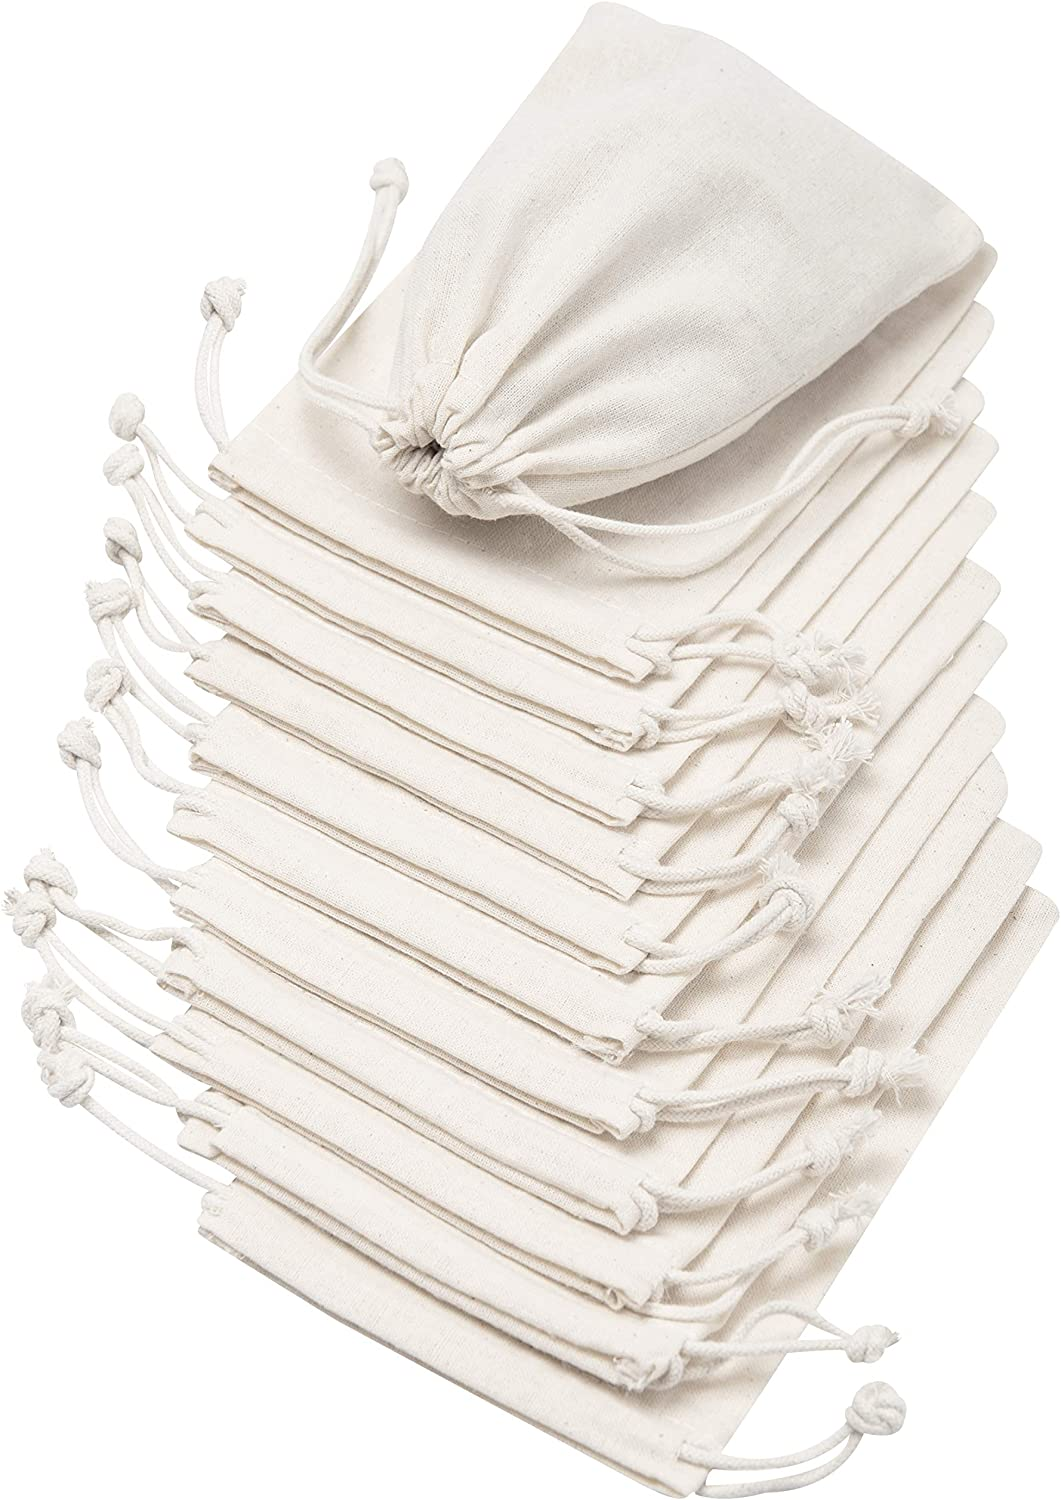 100 Percent Cotton Muslin Drawstring Bags 12-Pack for Storage Pantry Gifts - Unbleached (4 x 6, Beige)